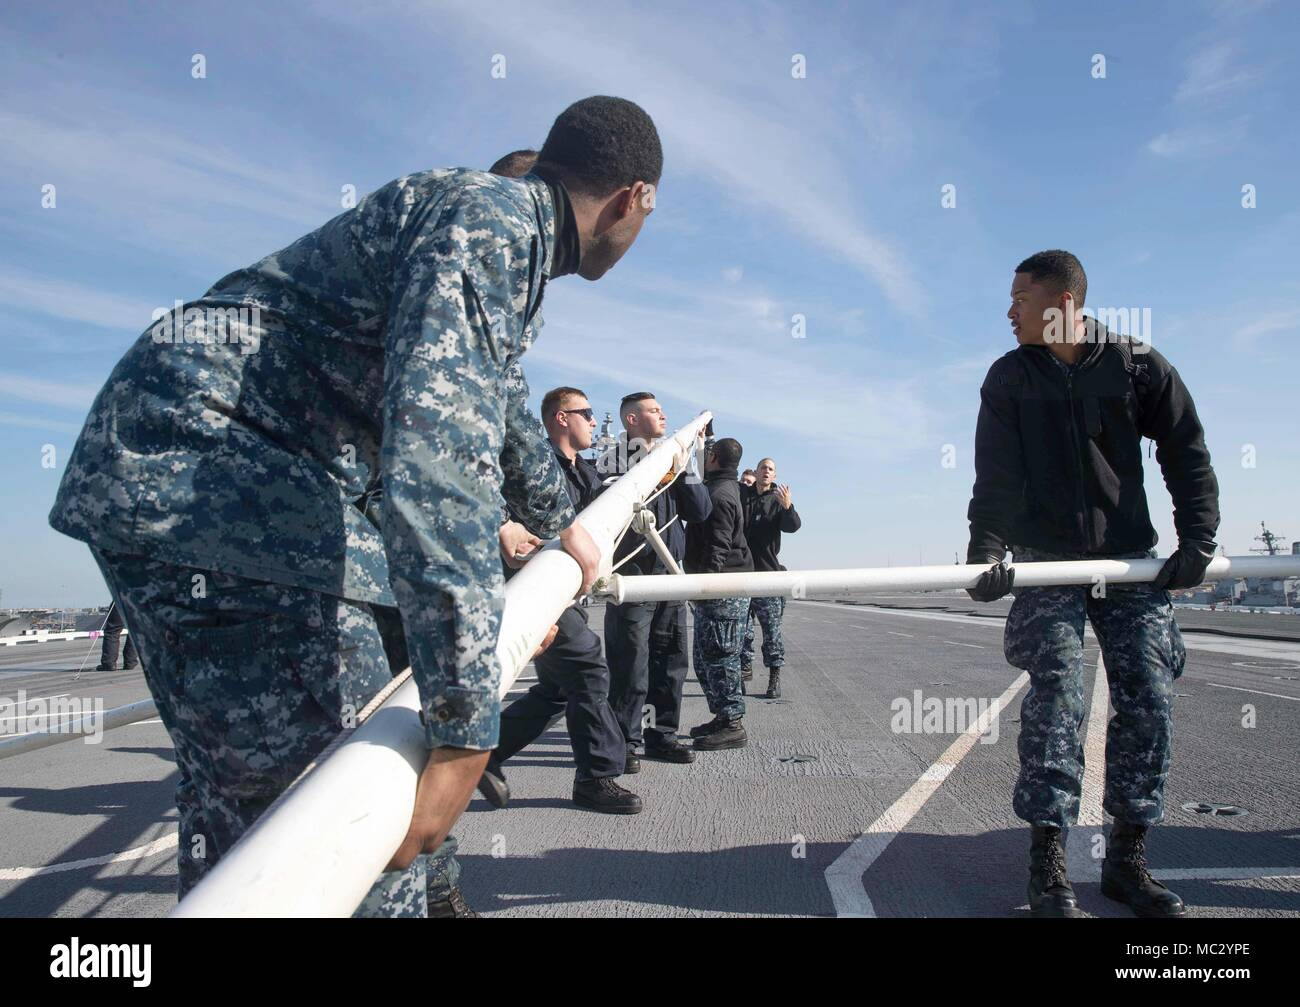 180126-N-YP246-0094 NORFOLK (Jan 26, 2018) Sailors dismantle the jack staff aboard the Nimitz-class aircraft carrier USS Abraham Lincoln (CVN 72). (U.S. Navy photo by Mass Communication Specialist Seaman Darcy McAtee/Released) - Stock Image